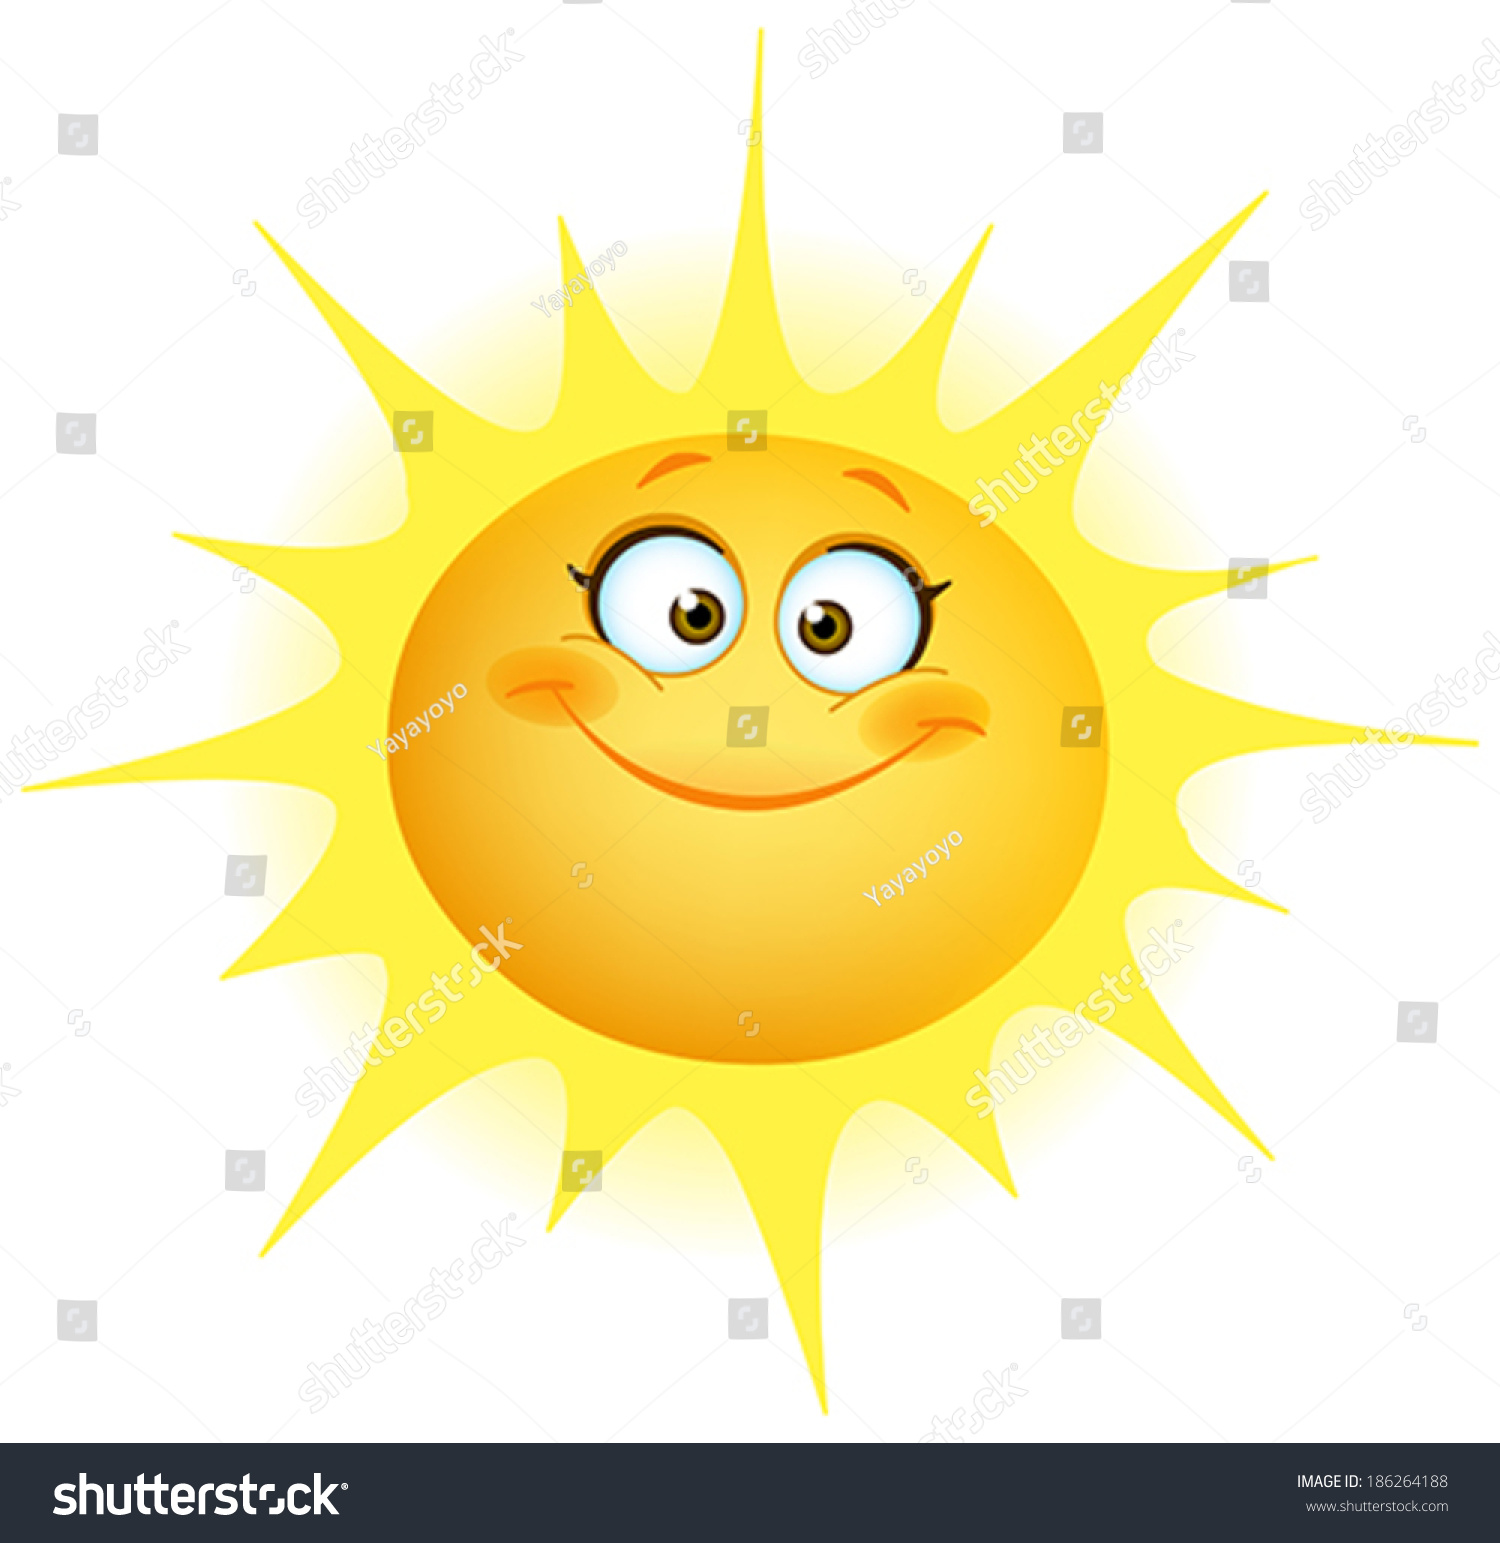 Smiling sun images - Cute Smiling Sun